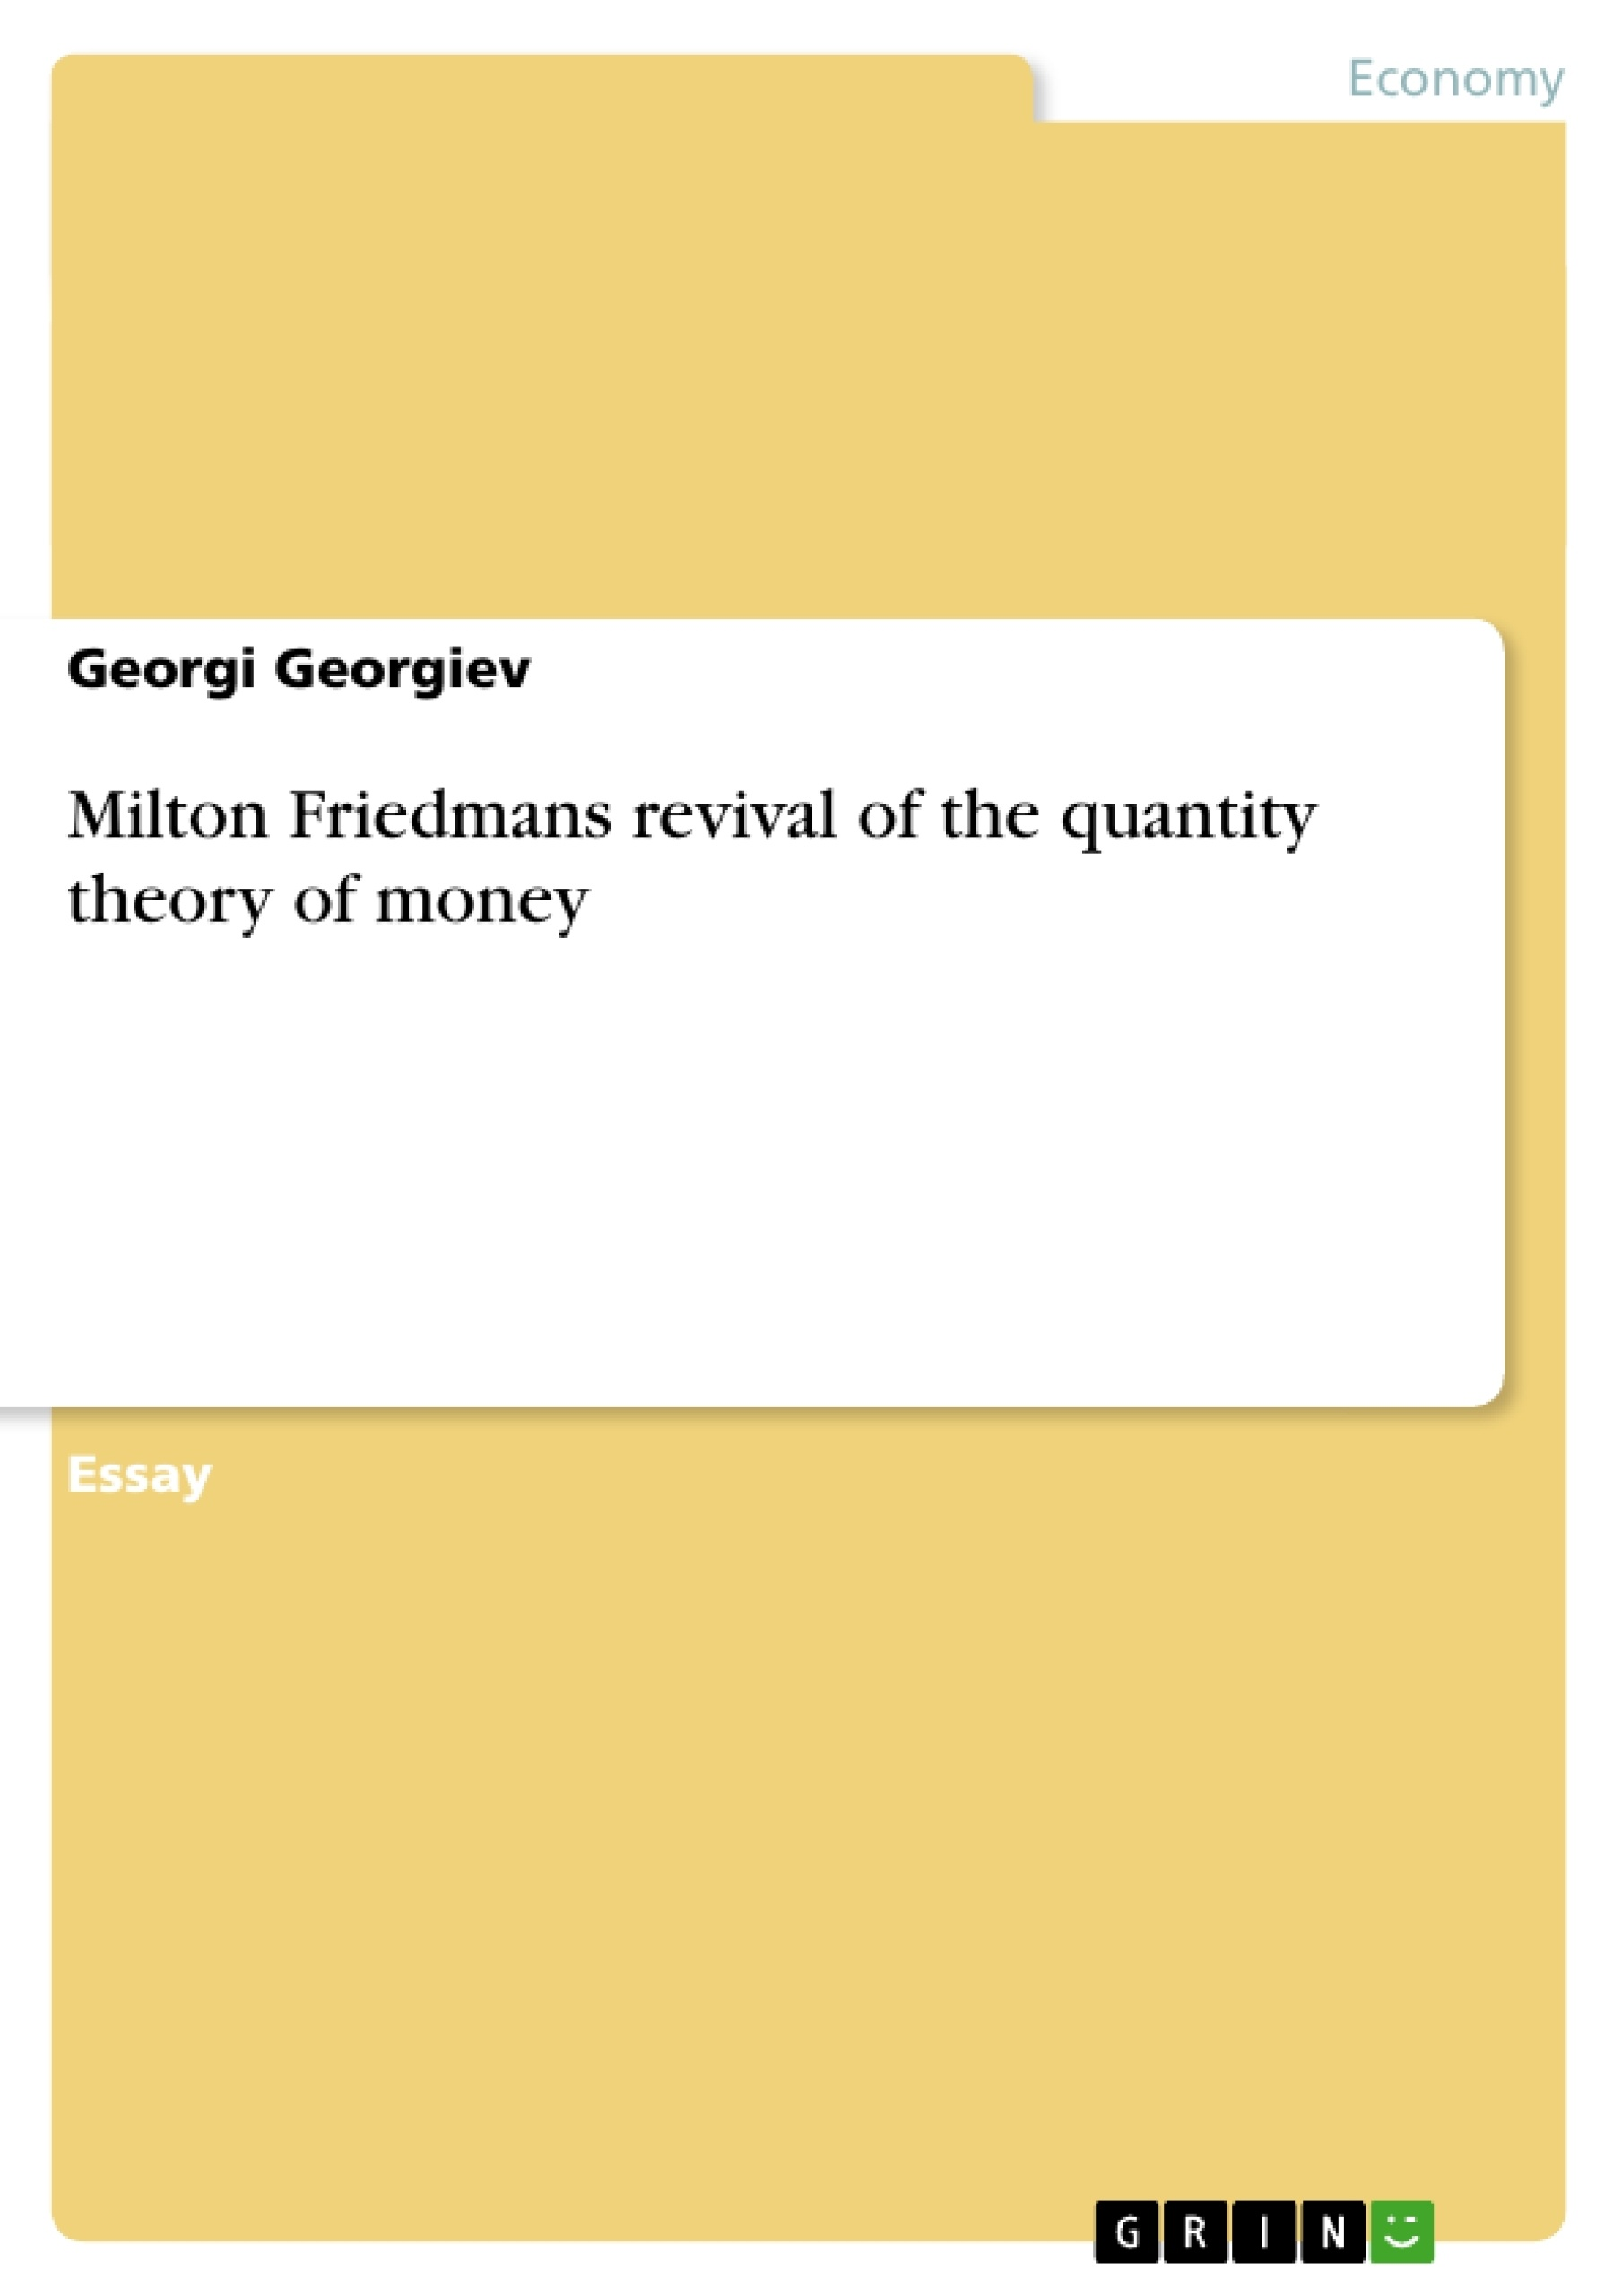 Title: Milton Friedmans revival of the quantity theory of money